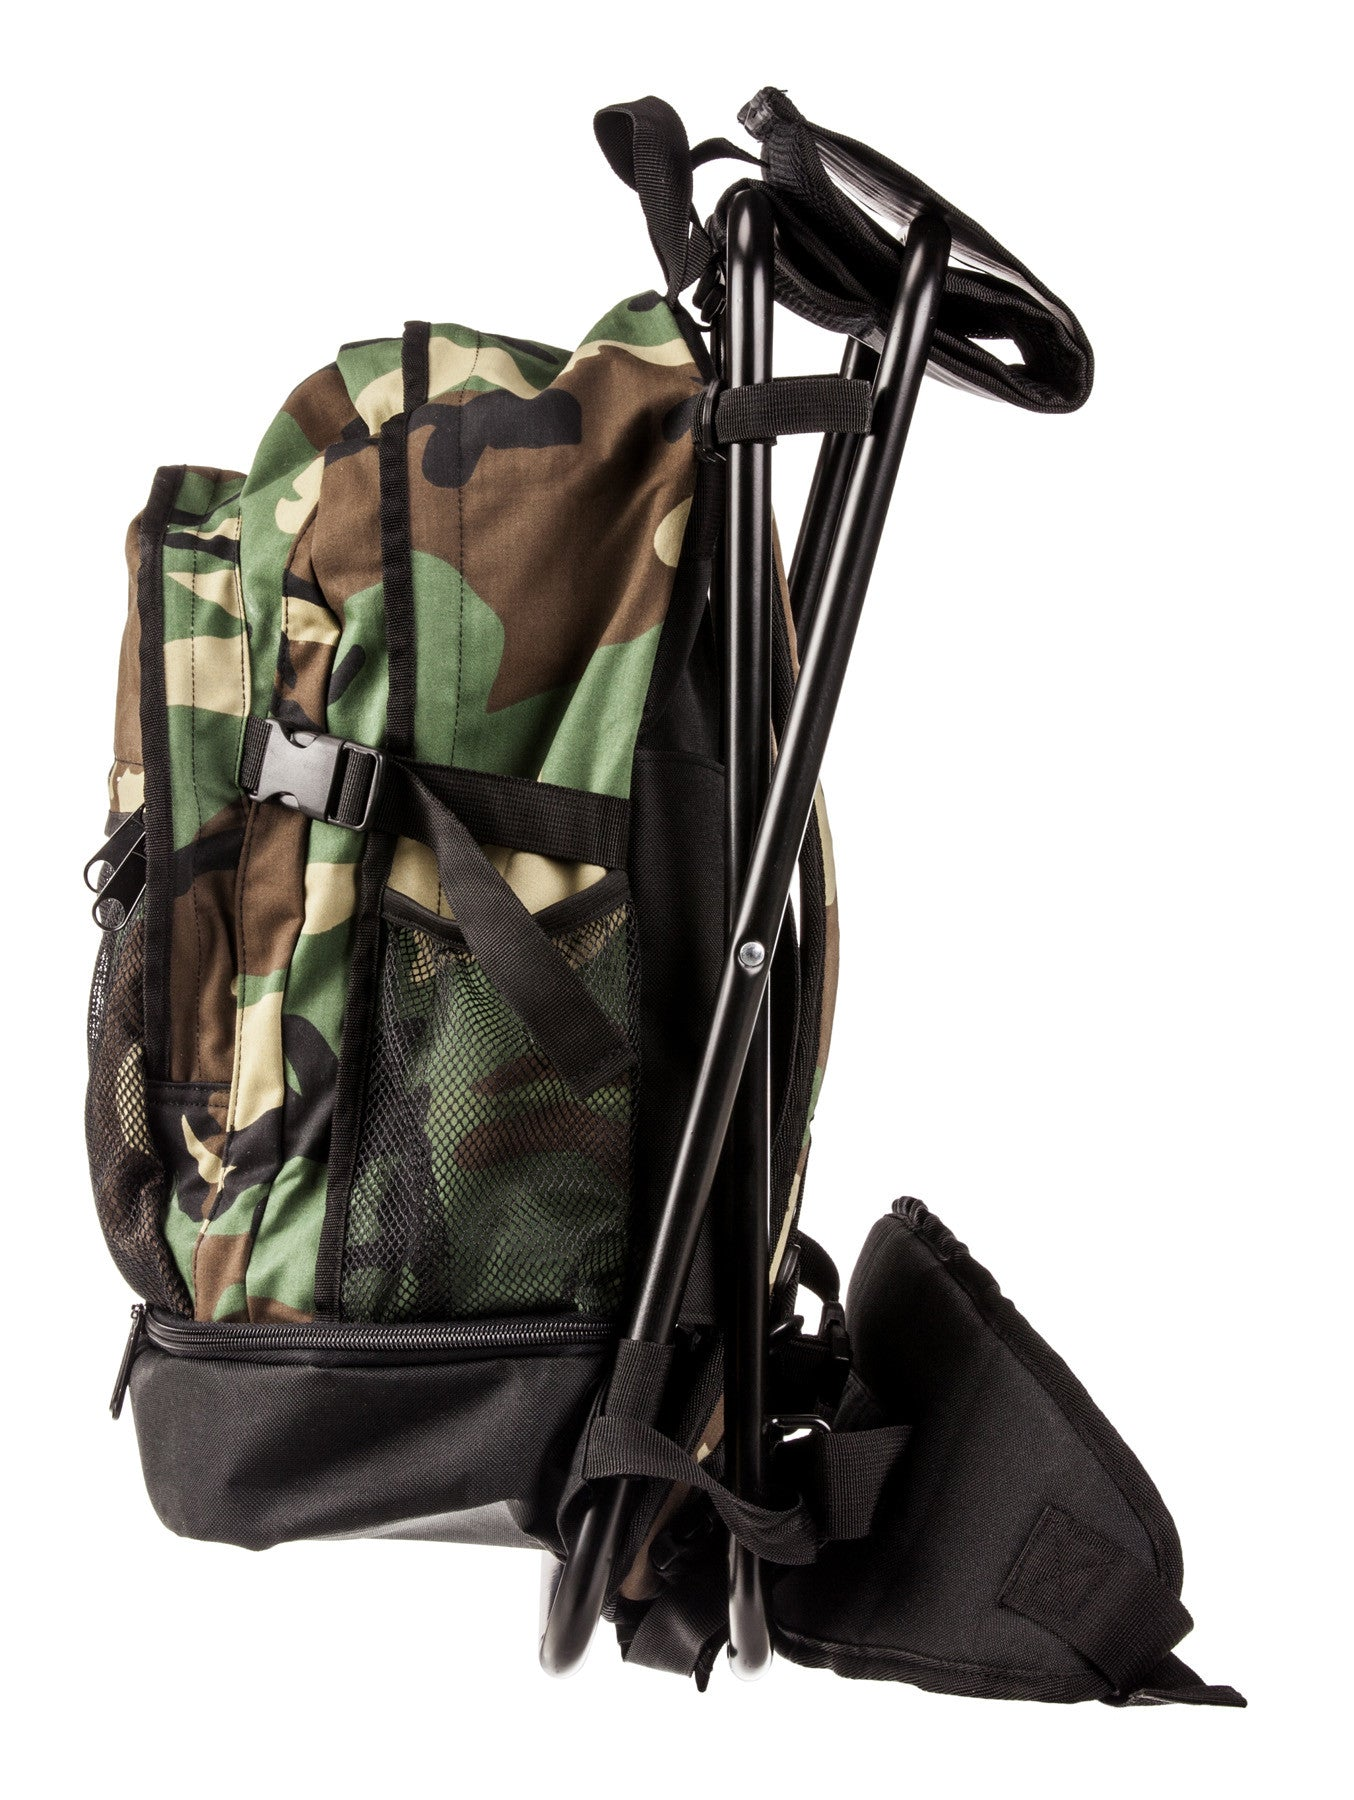 Army Backpack with Steel Frame Stool, Woodland Camo - Wilson